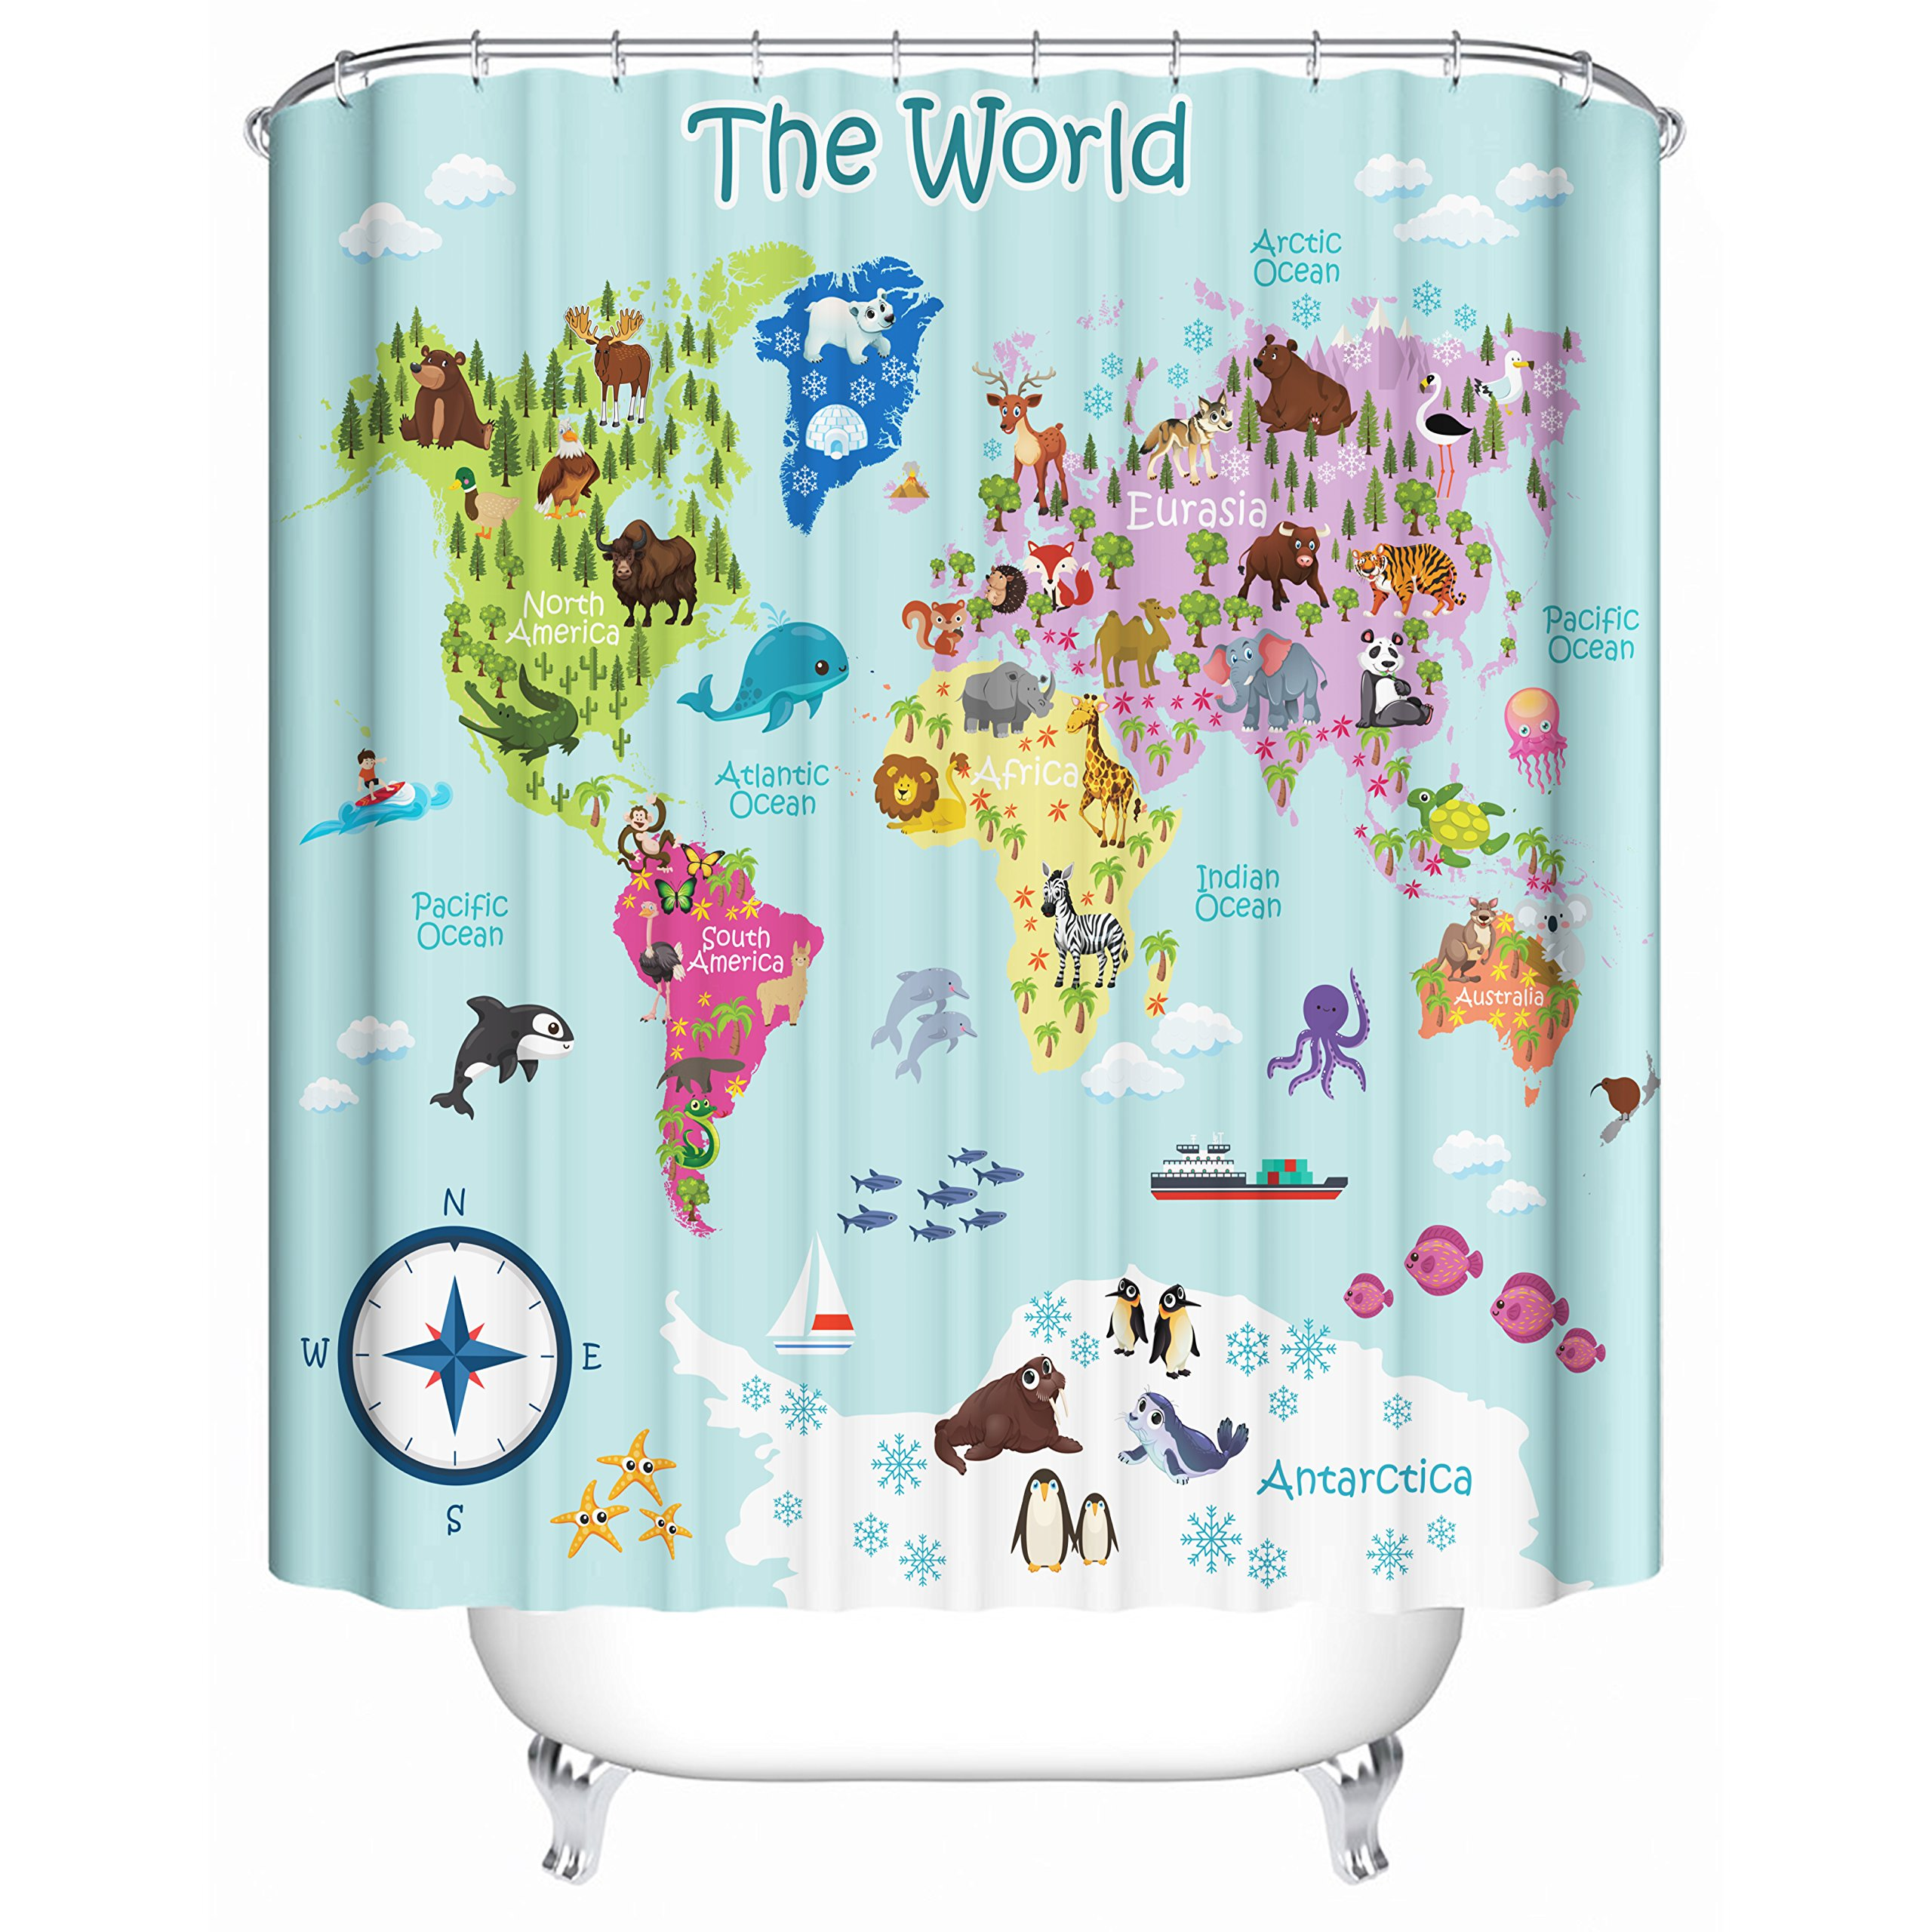 Kids World Map Shower Curtain For Kids - 71 X 71 Inches with 12 Sturdy Hooks - Premium Quality 100% Woven Polyester Unique Design with Color Coded Continent and Various Animals Of Each Country